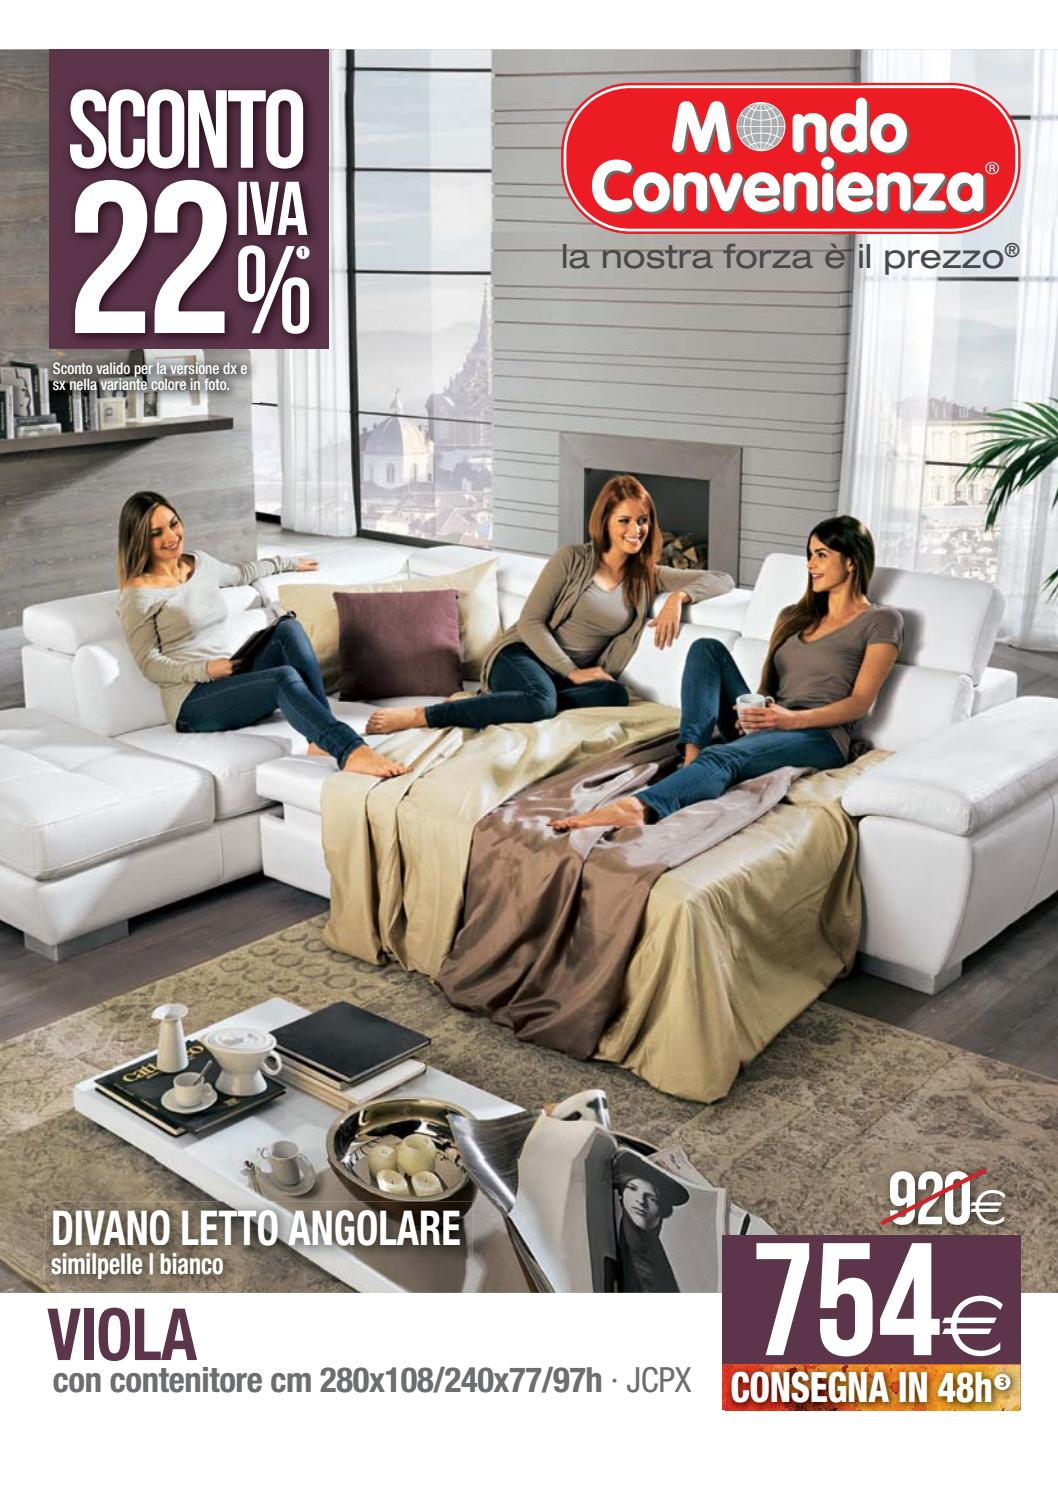 Offerte Poltrone Reclinabili Mondo Convenienza.Mondoconv Divani By Best Of Volantinoweb Issuu